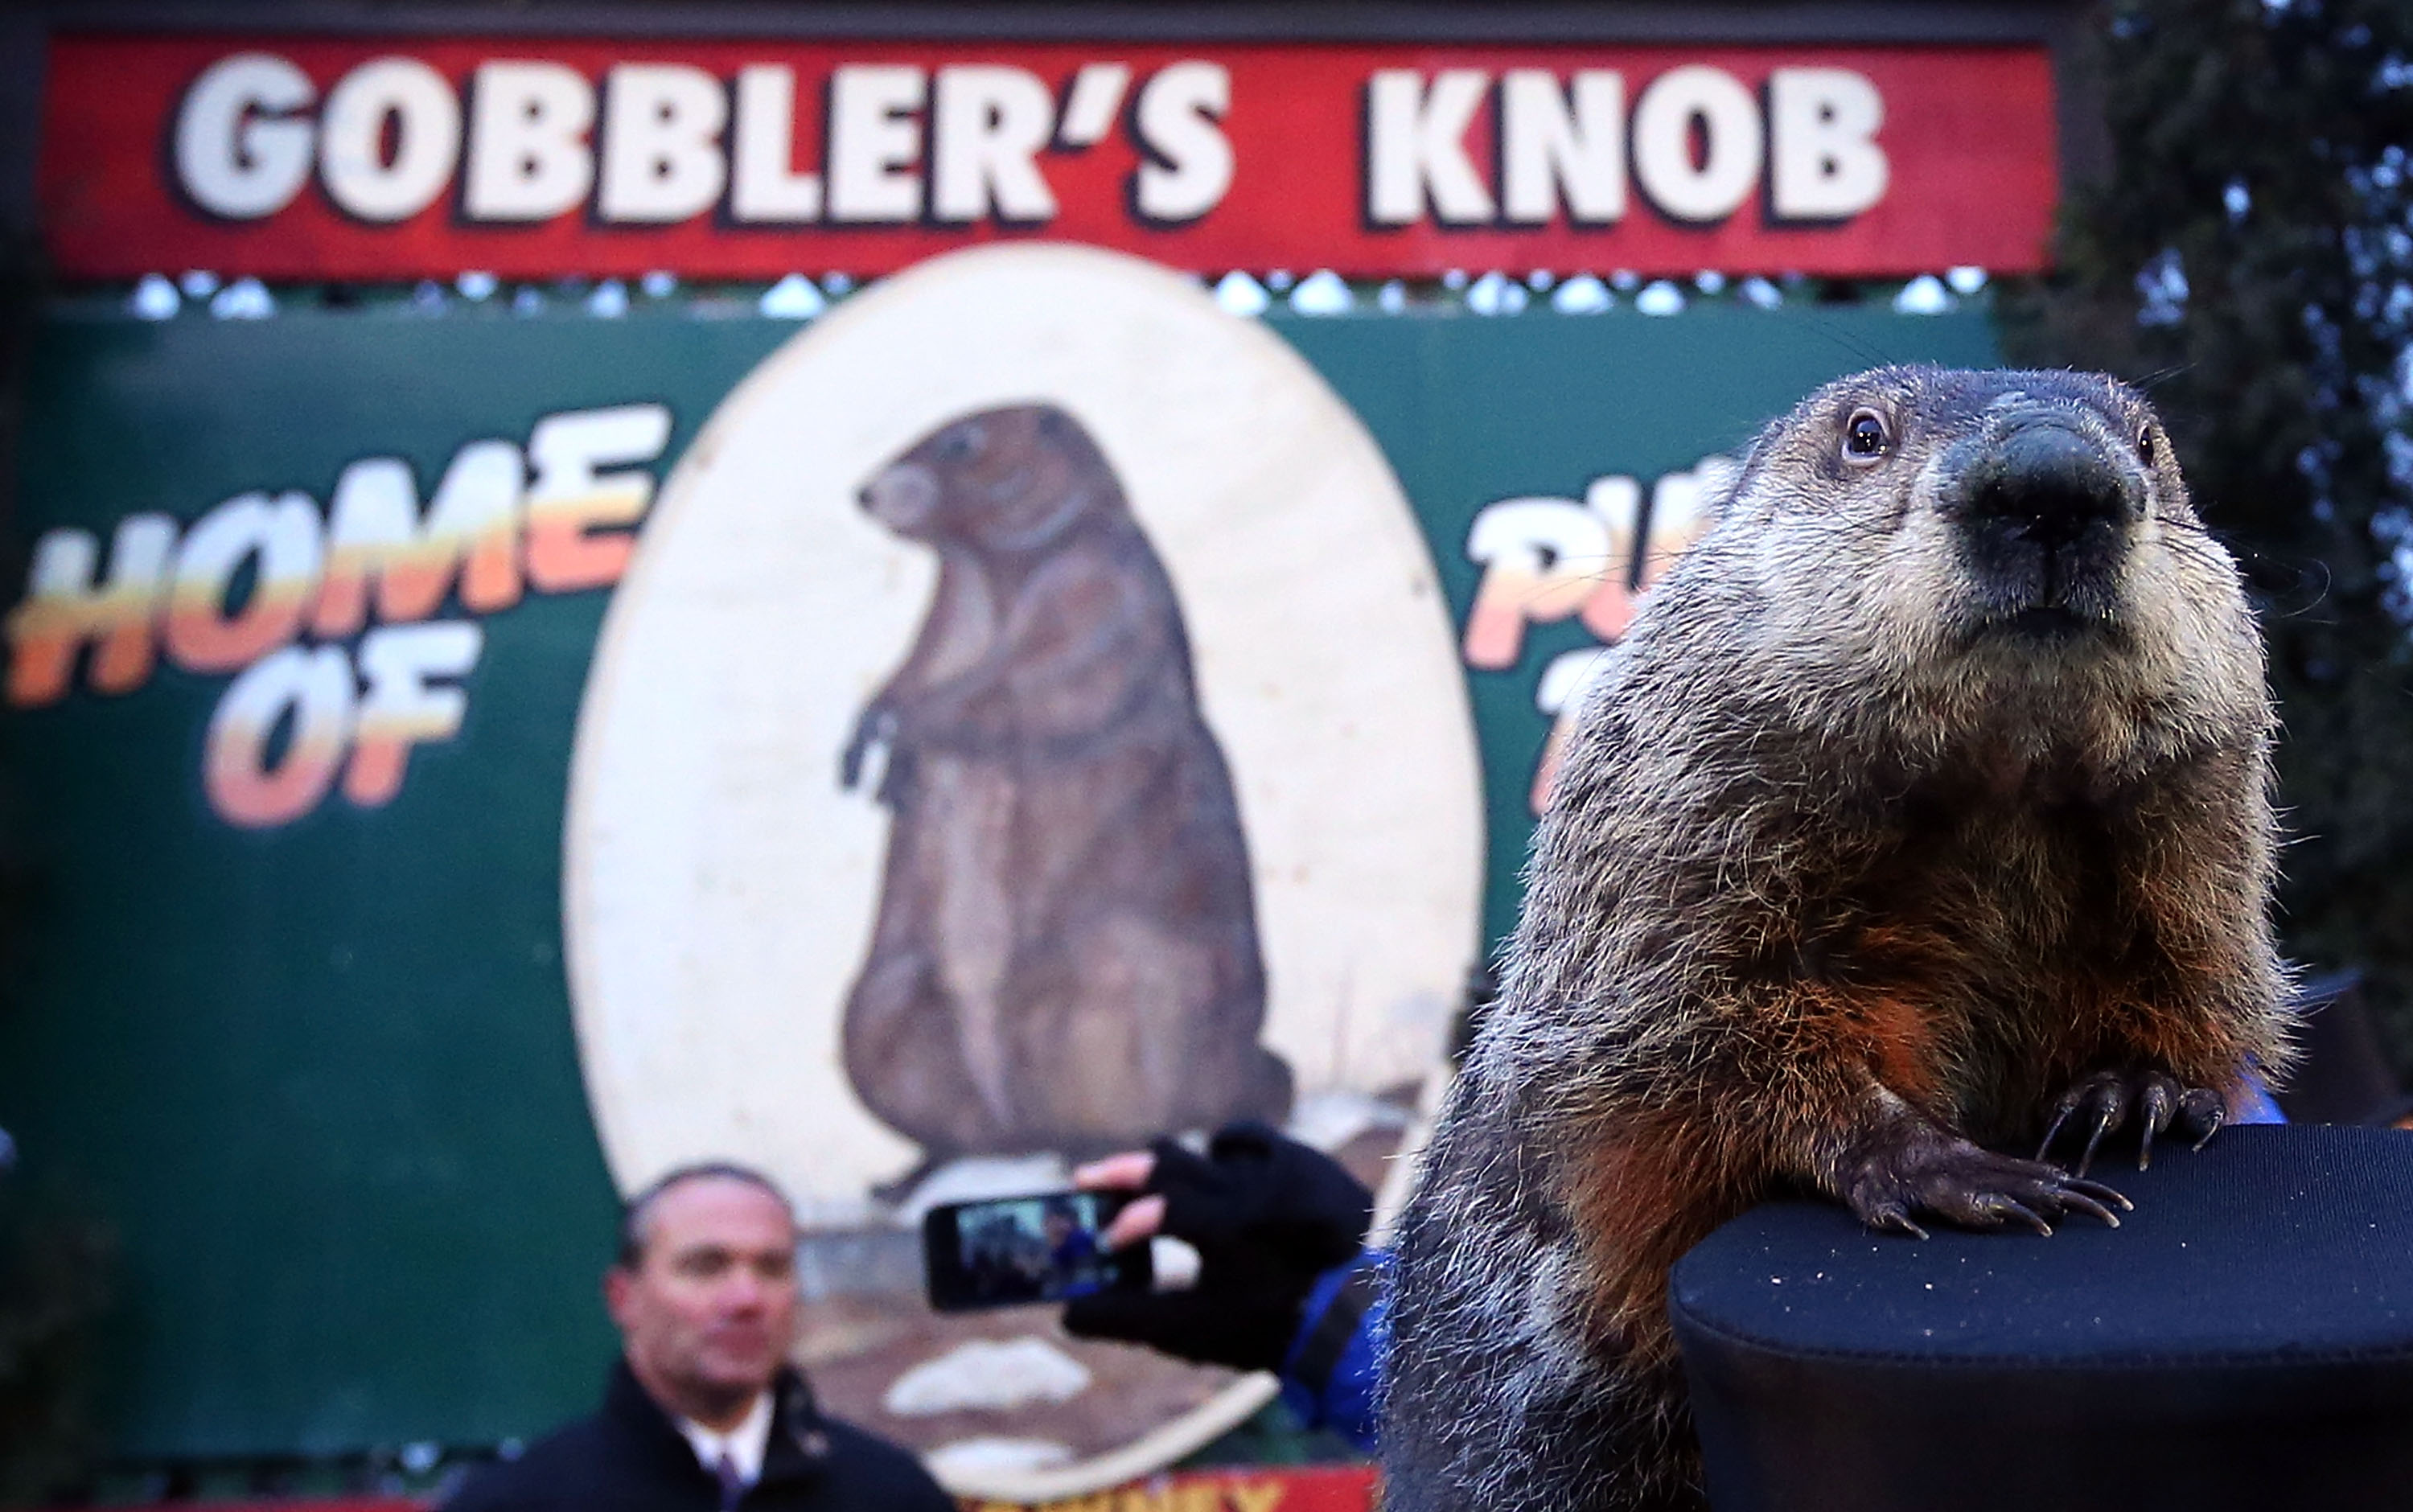 Annual Groundhog's Day Ritual Held In Punxsutawney, Pennsylvania | Photo by pix11.com